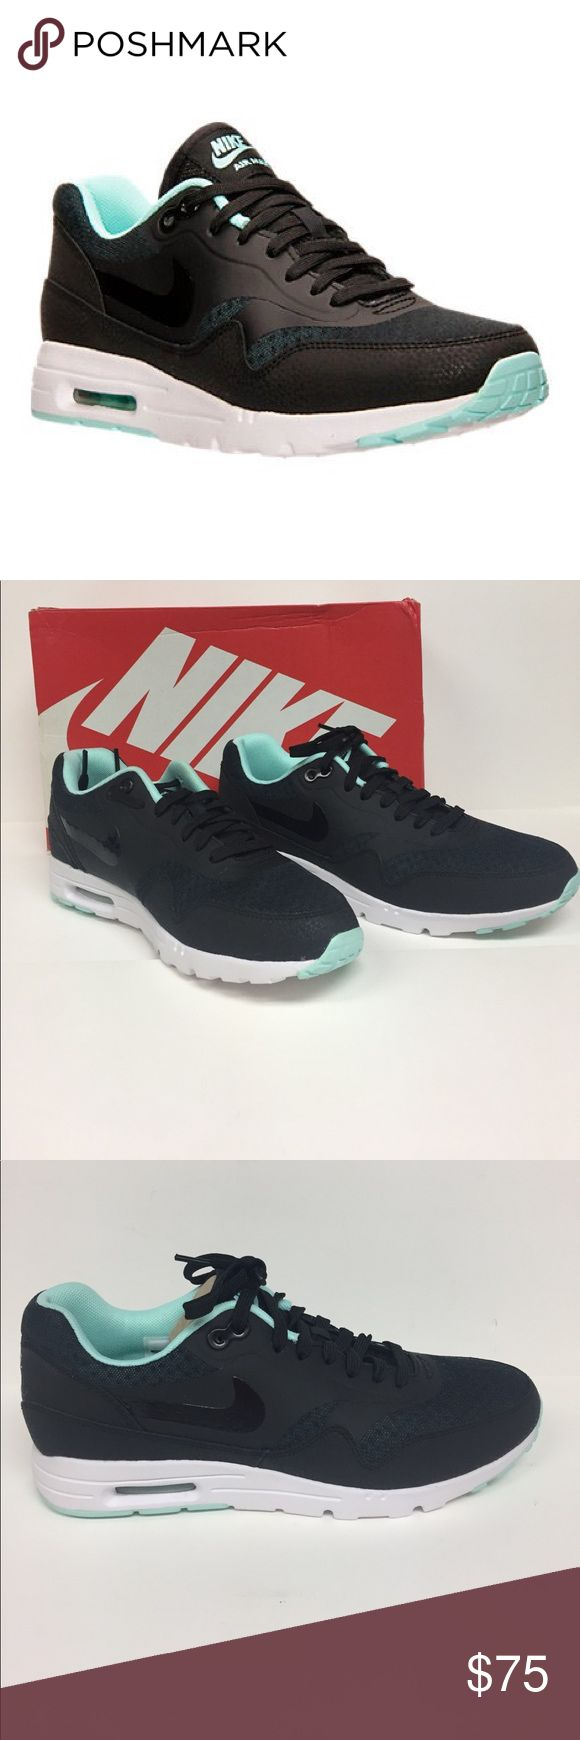 Nike Air Max 1 Essentials Running Shoe 704993 003 Super Lightweight midsole/outsole combo keeps you cool and comfortable all day long. Leather and textile upper. Visible Air sole unit in the heel for iconic cushioning you know and trust. Color is black/artisan teal/white. Brand-new in box. Nike Shoes Sneakers